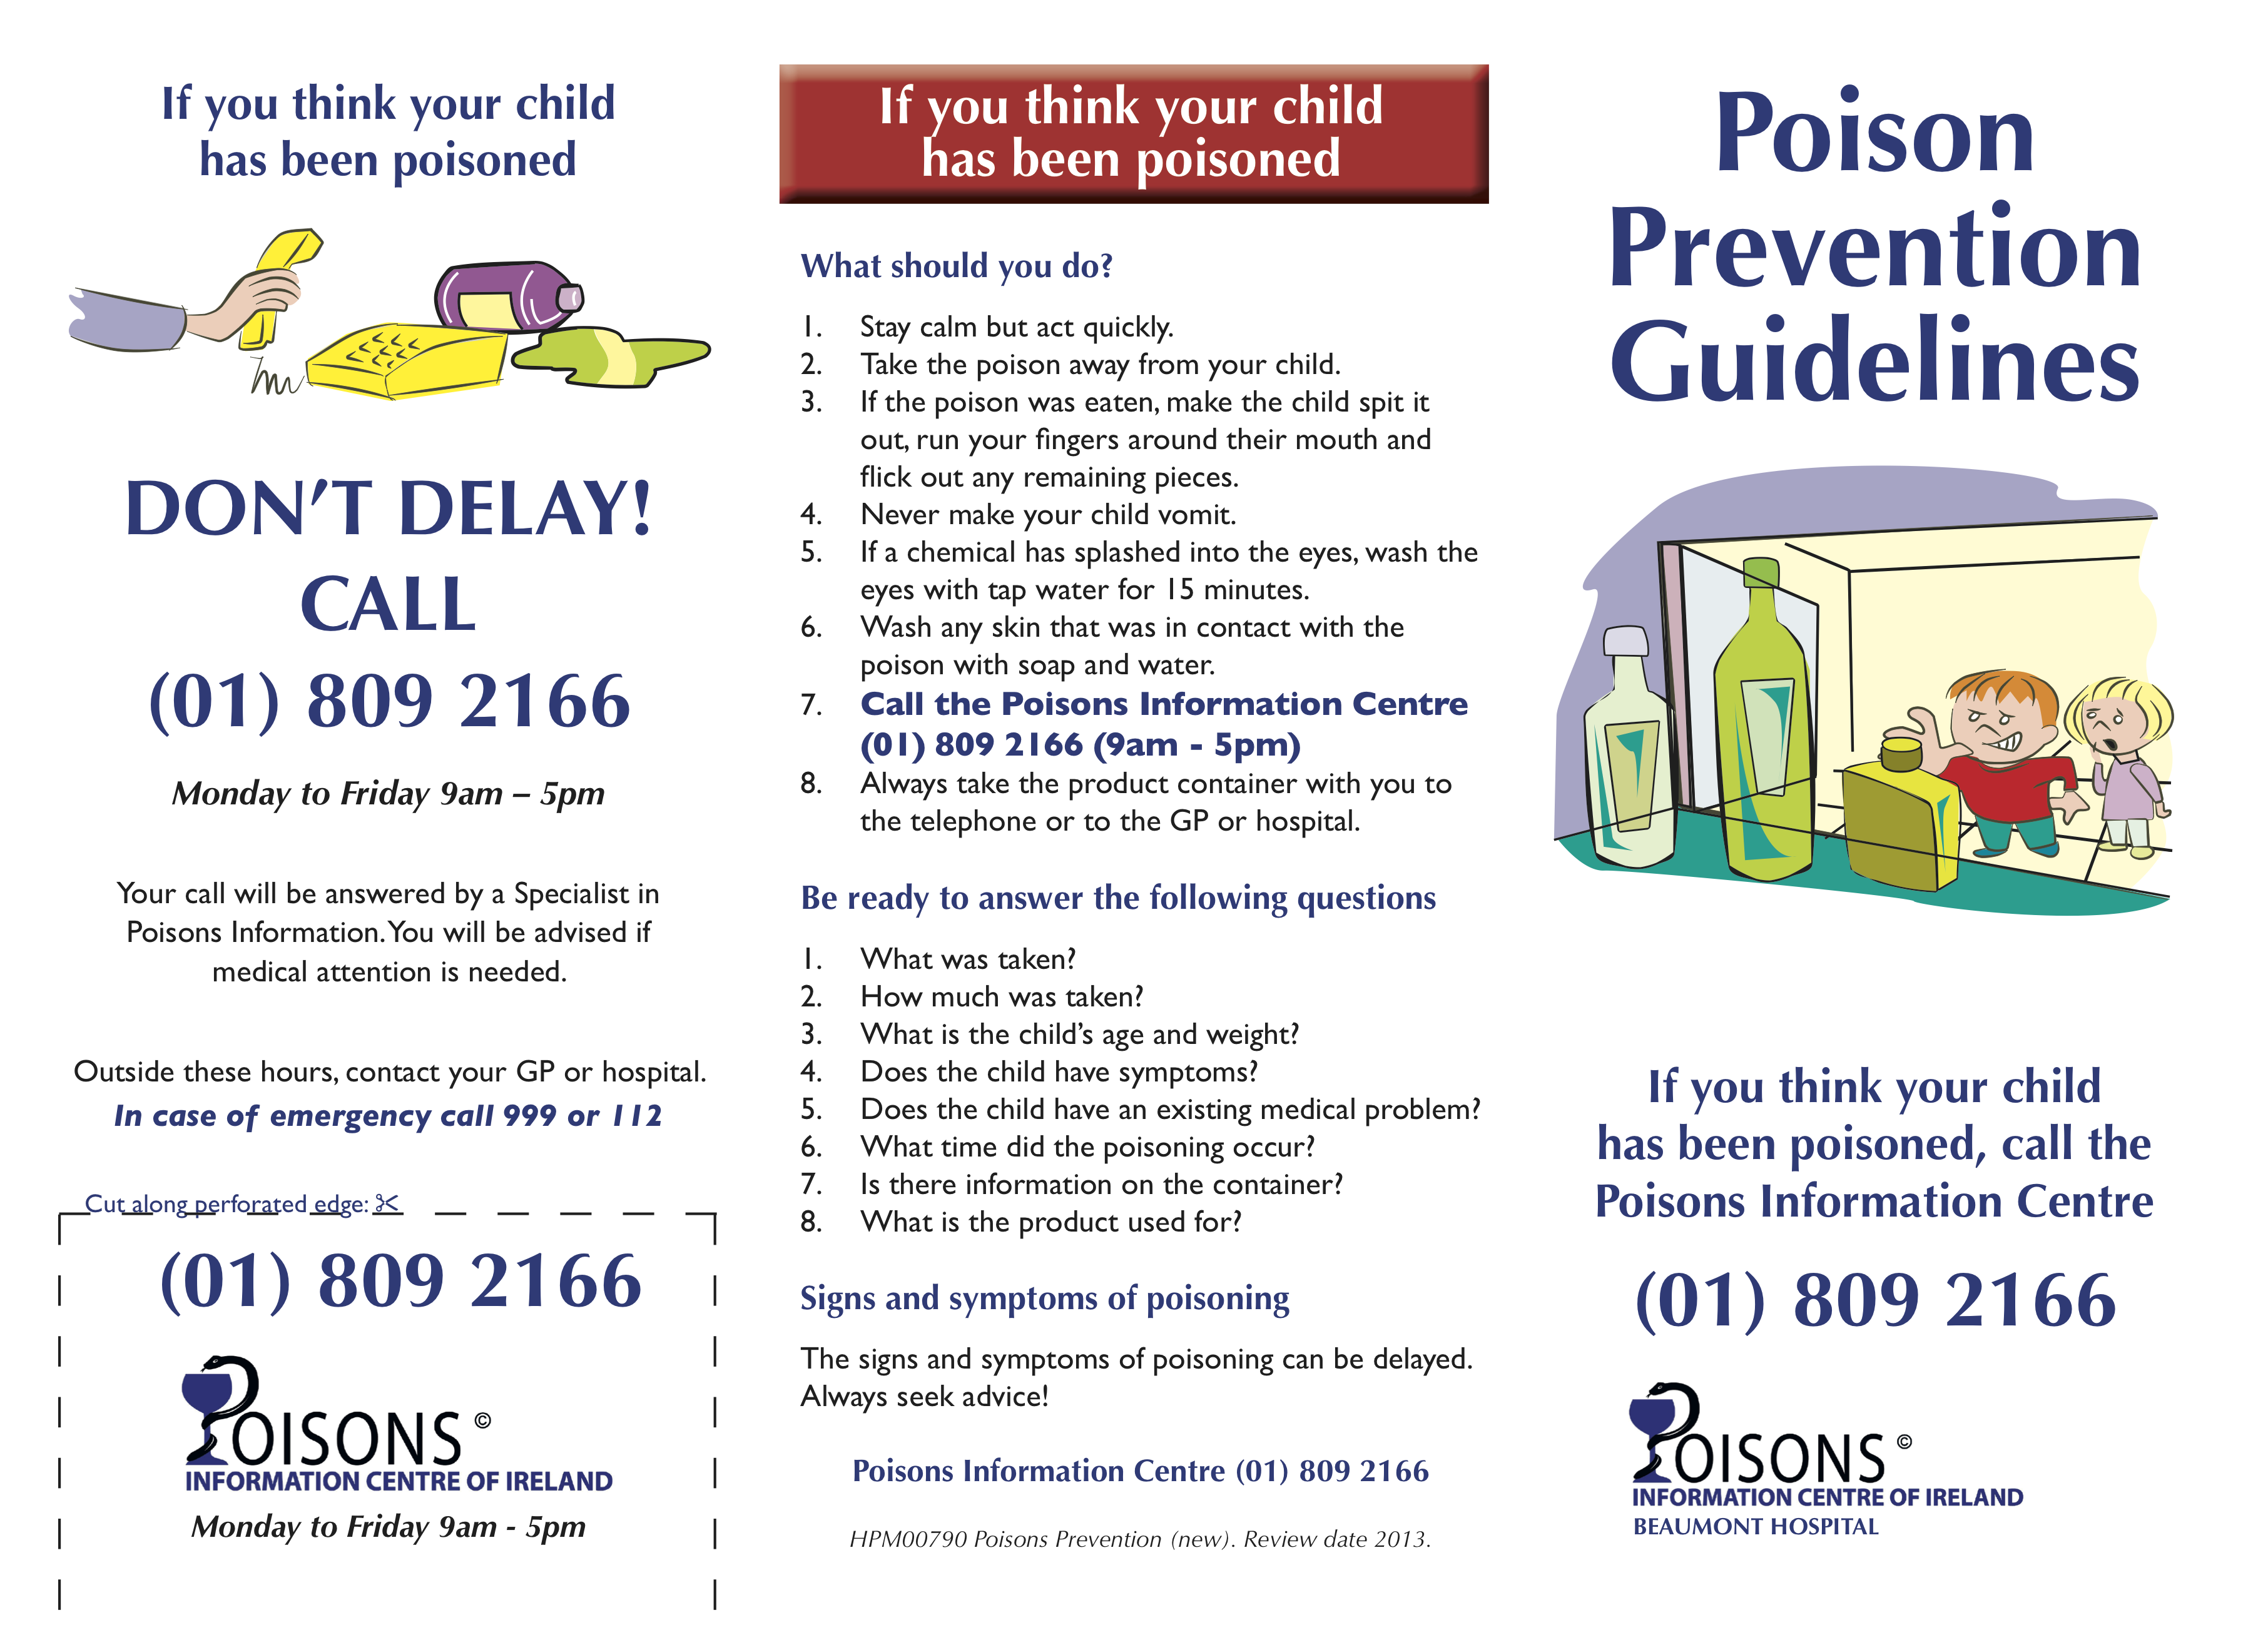 Poison Prevention recommend